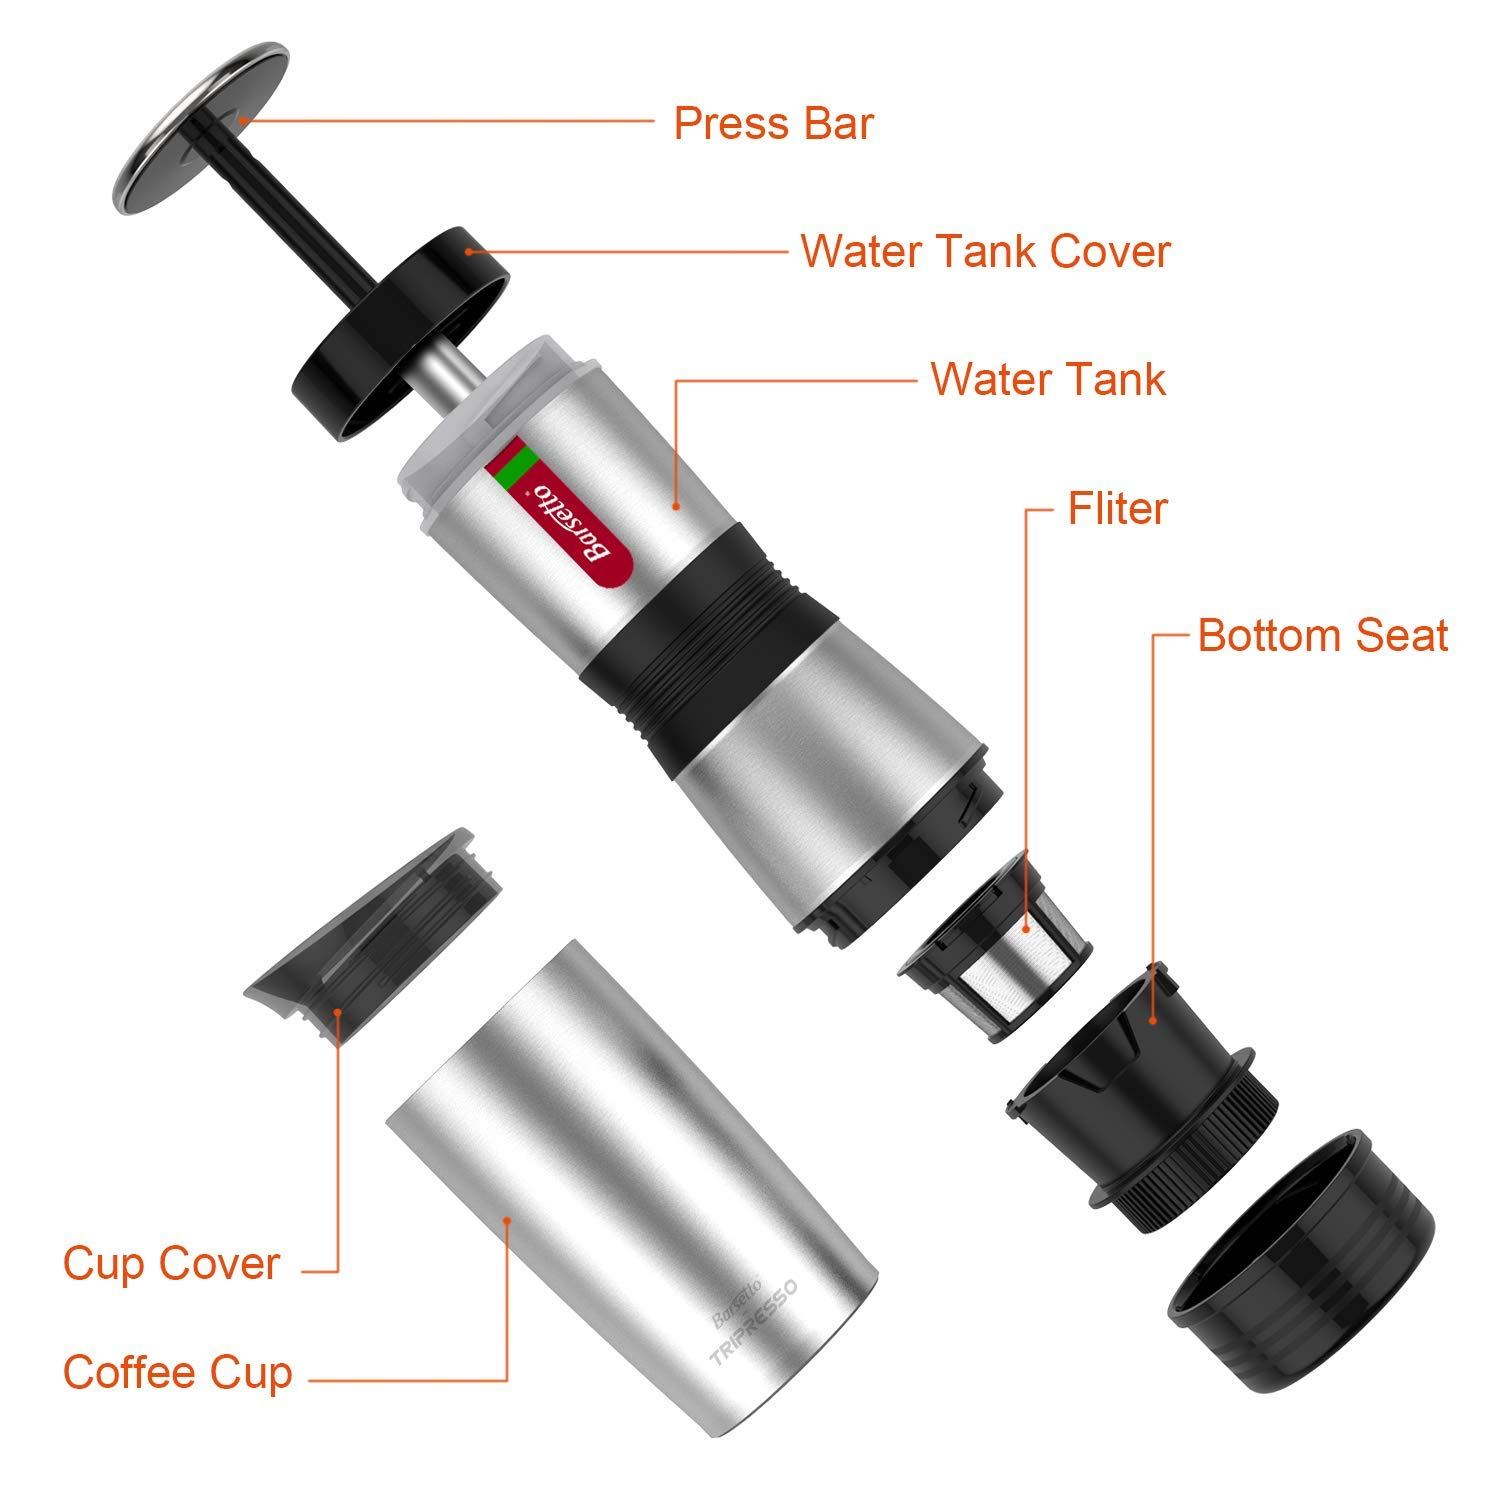 Portable Coffee Maker Barsetto Americano Coffee Machine for K-cup and Ground coffee Stainless Steel Coffeemaker with Double Wall Insulate Mug for Travel Picnic Hiking and Camping by Barsetto (Image #4)